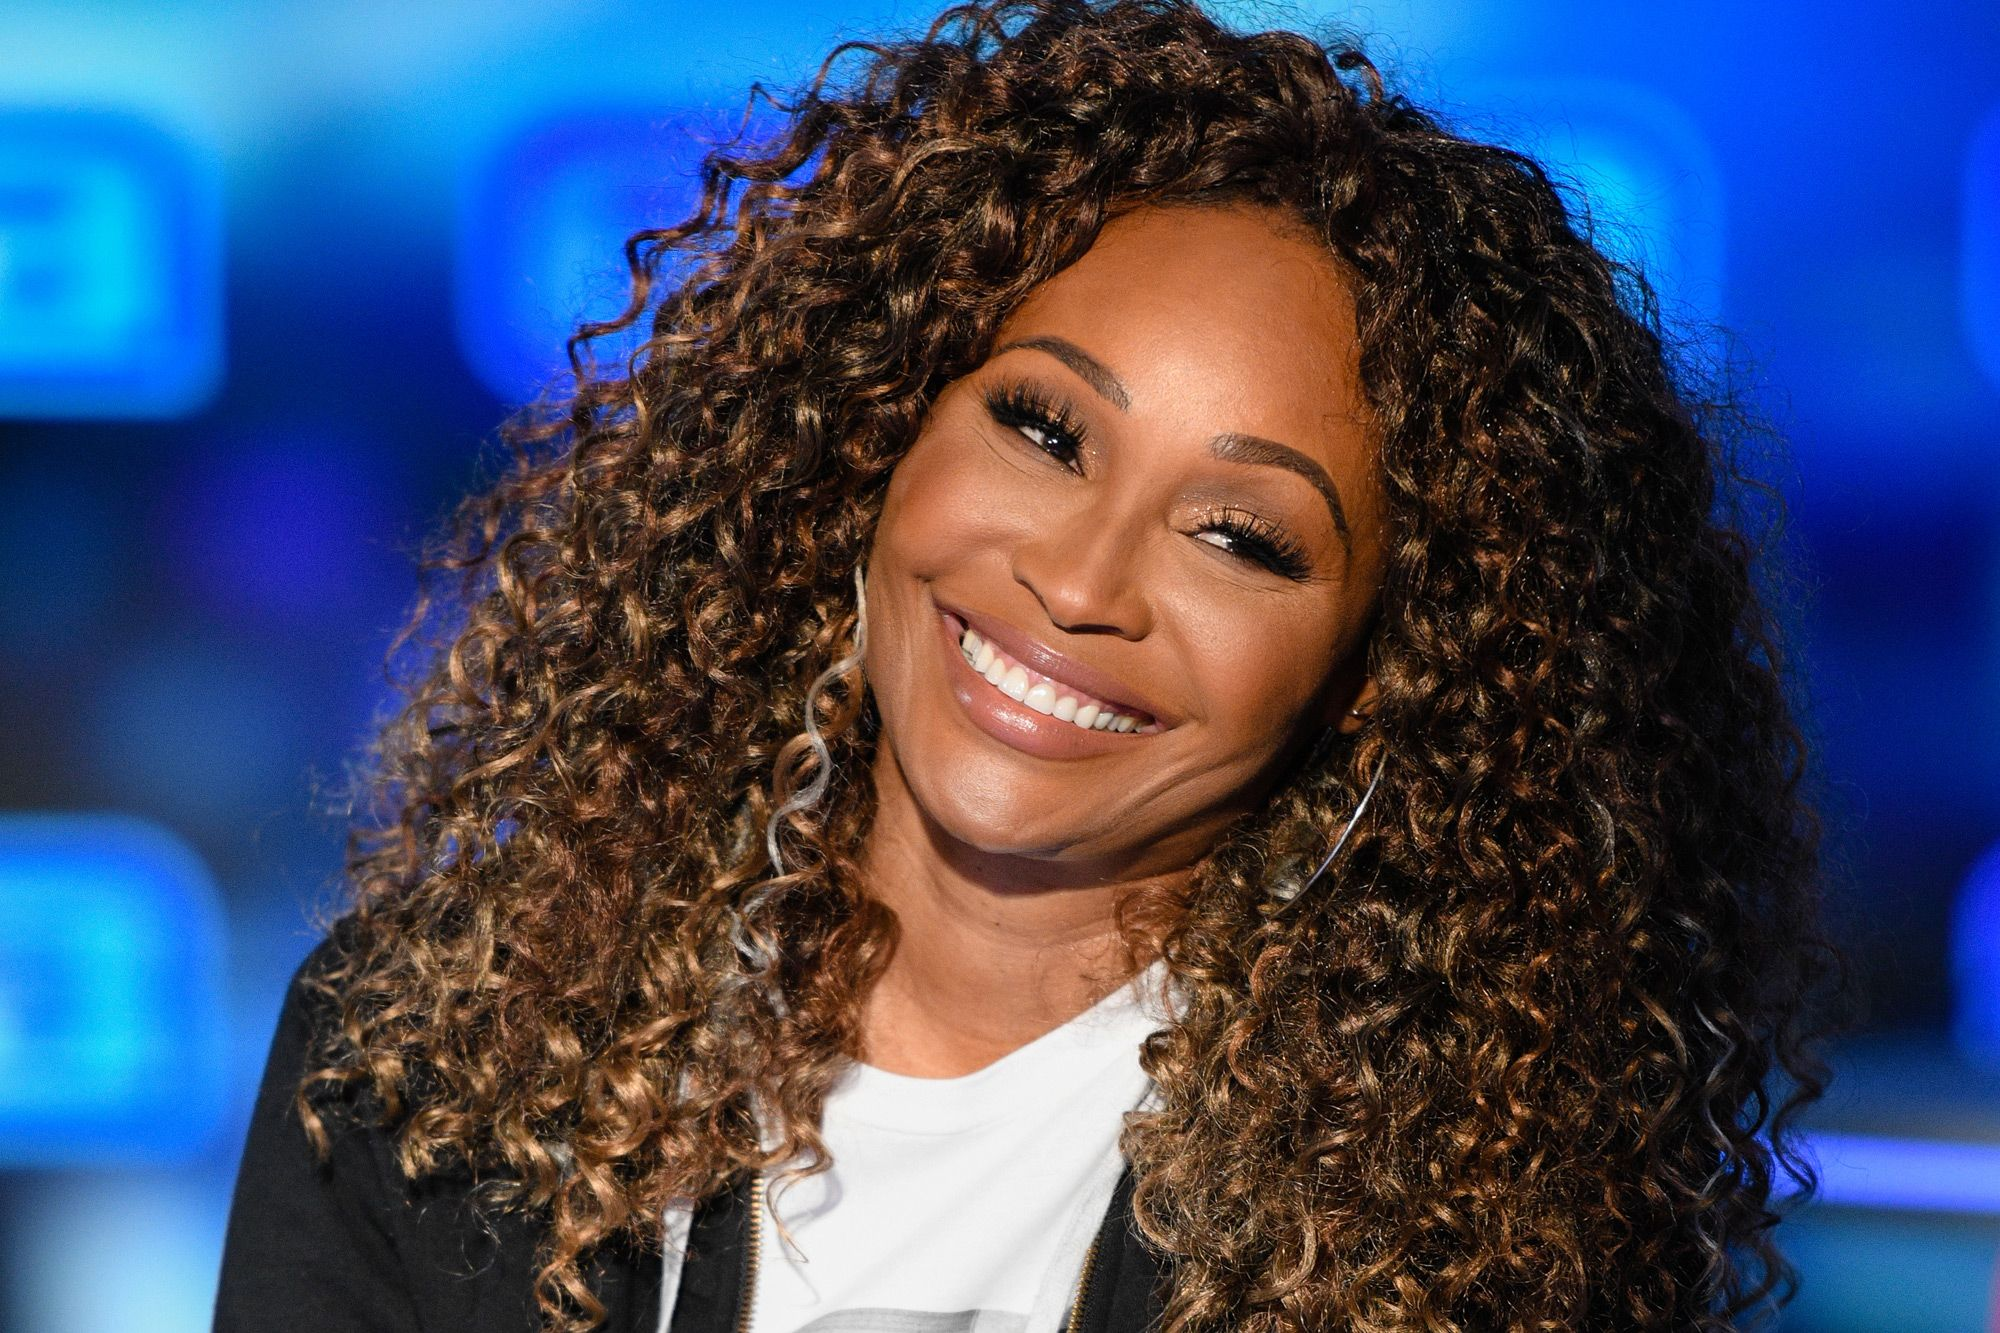 Cynthia Bailey Flaunts Her Slimmed Down Figure In This Little Black Dress – See Her Latest Pics That Have Fans Drooling